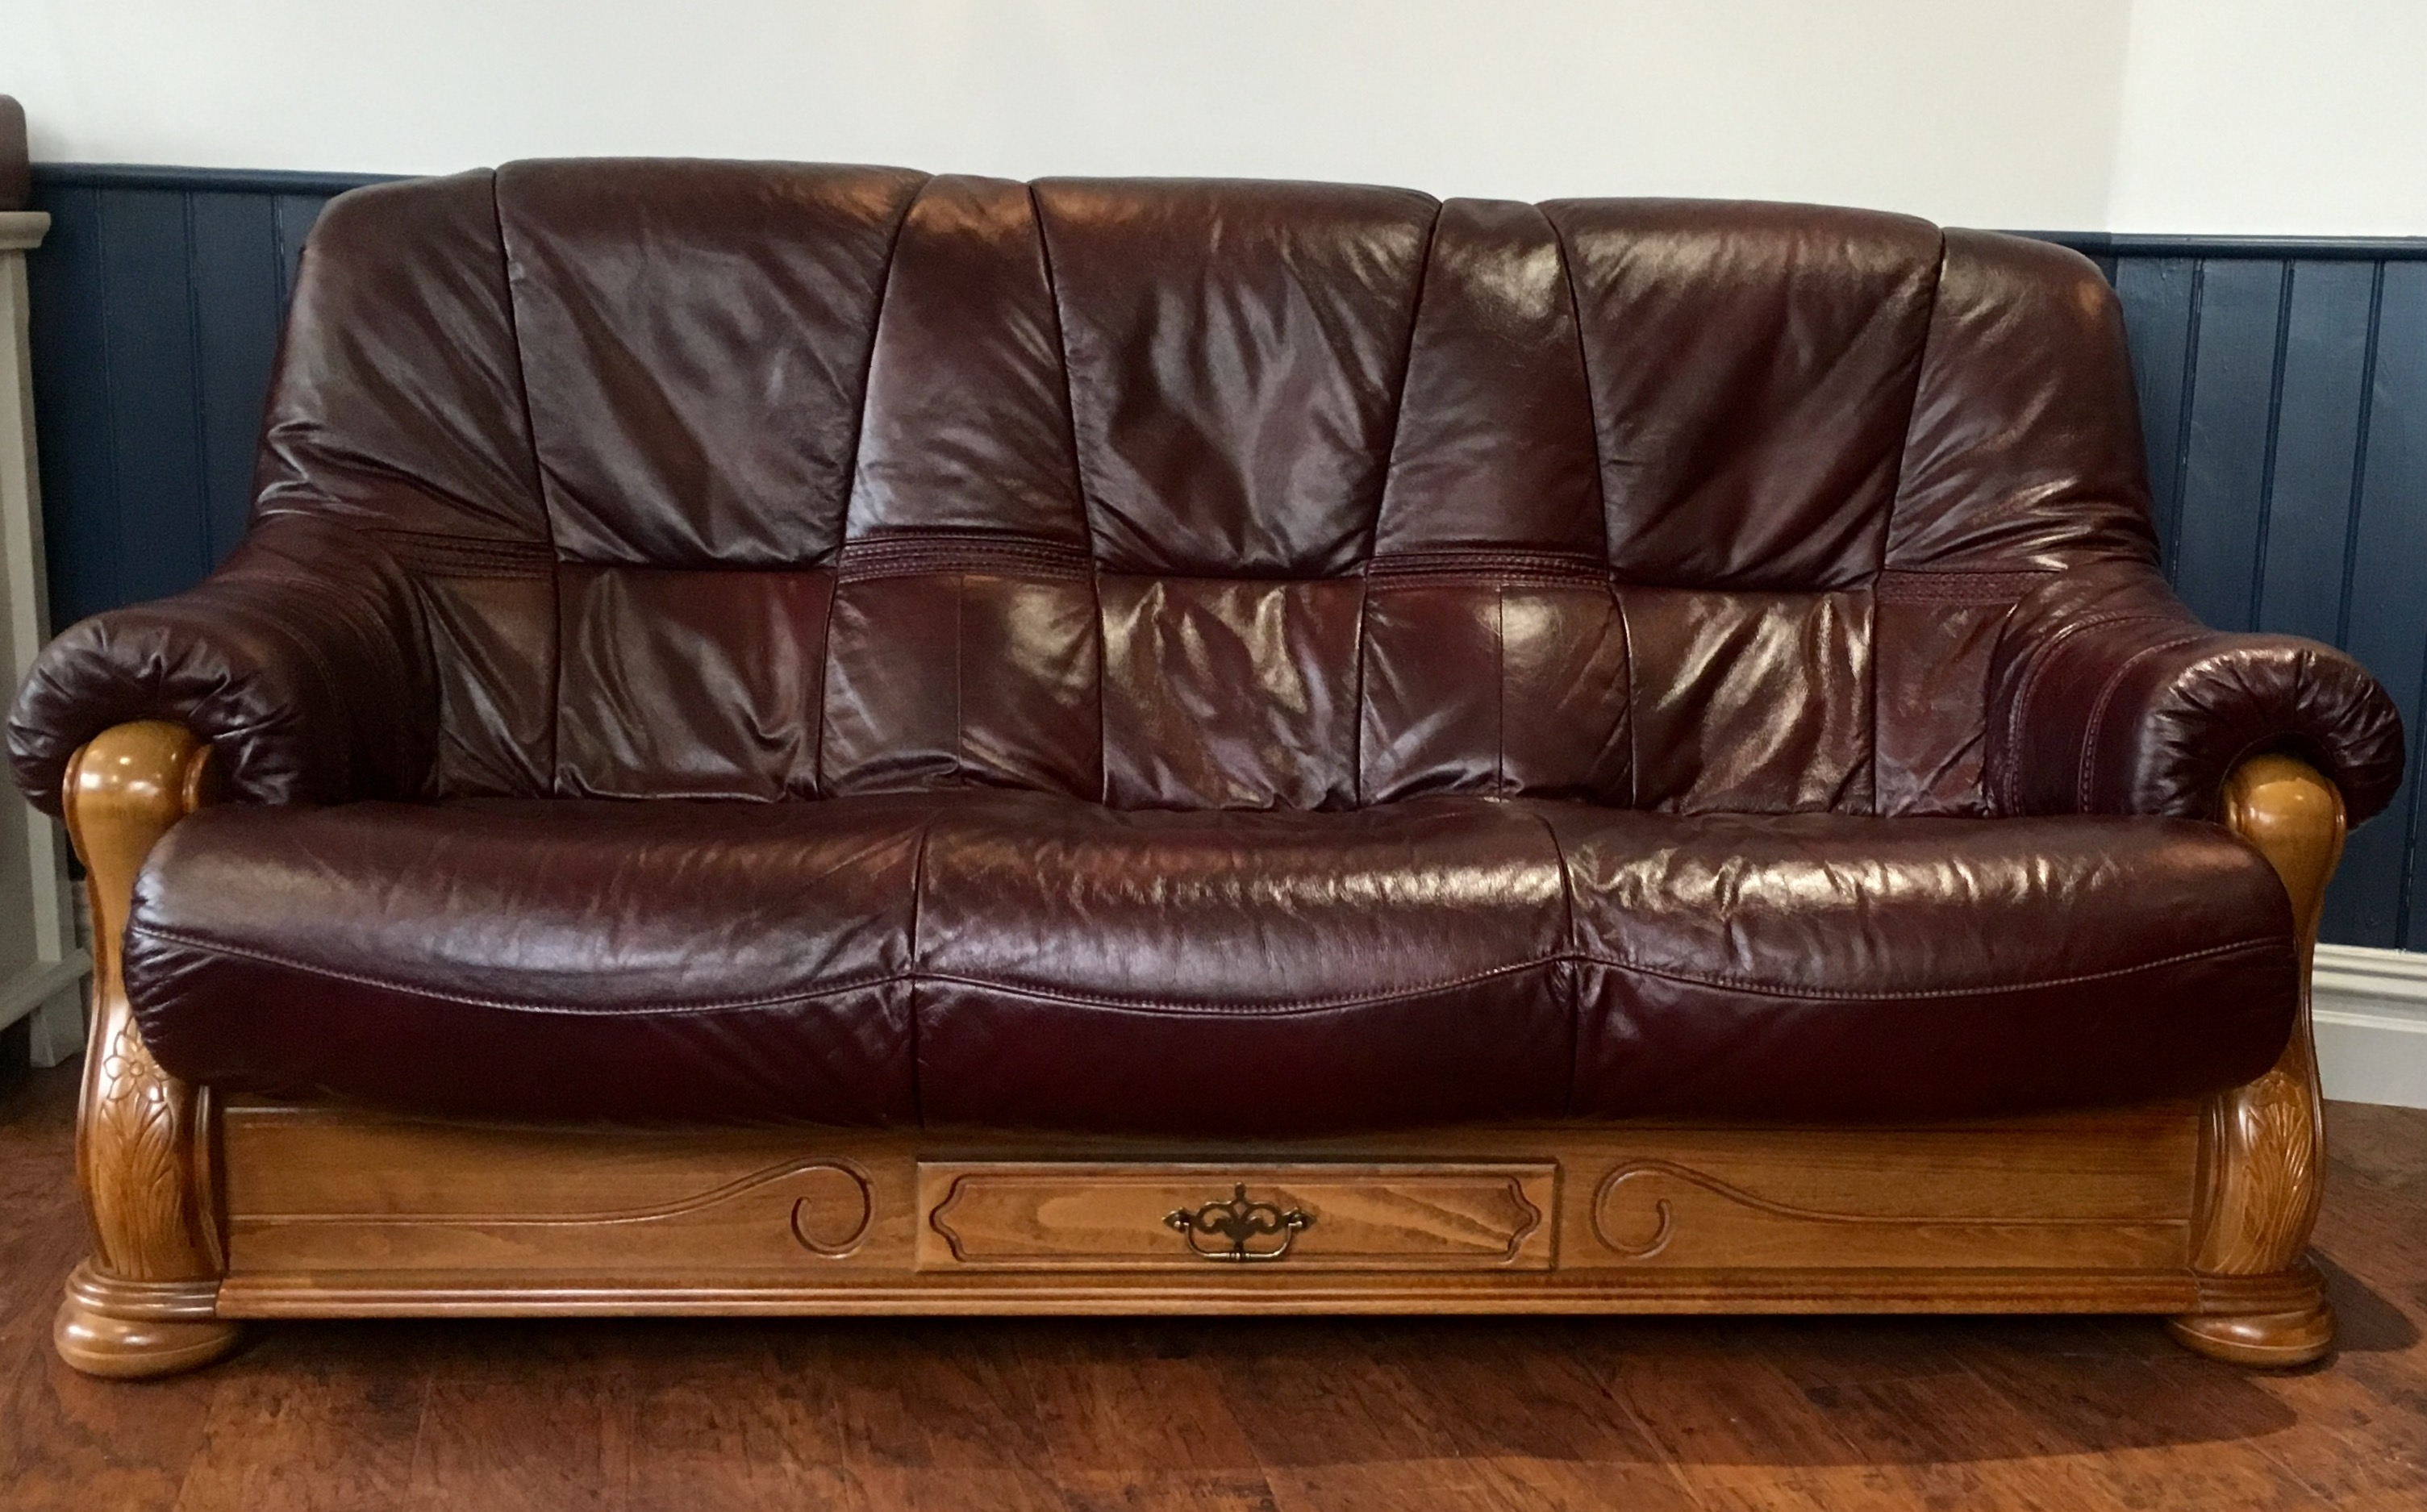 Burgundy leather seat sofa and reclining chair